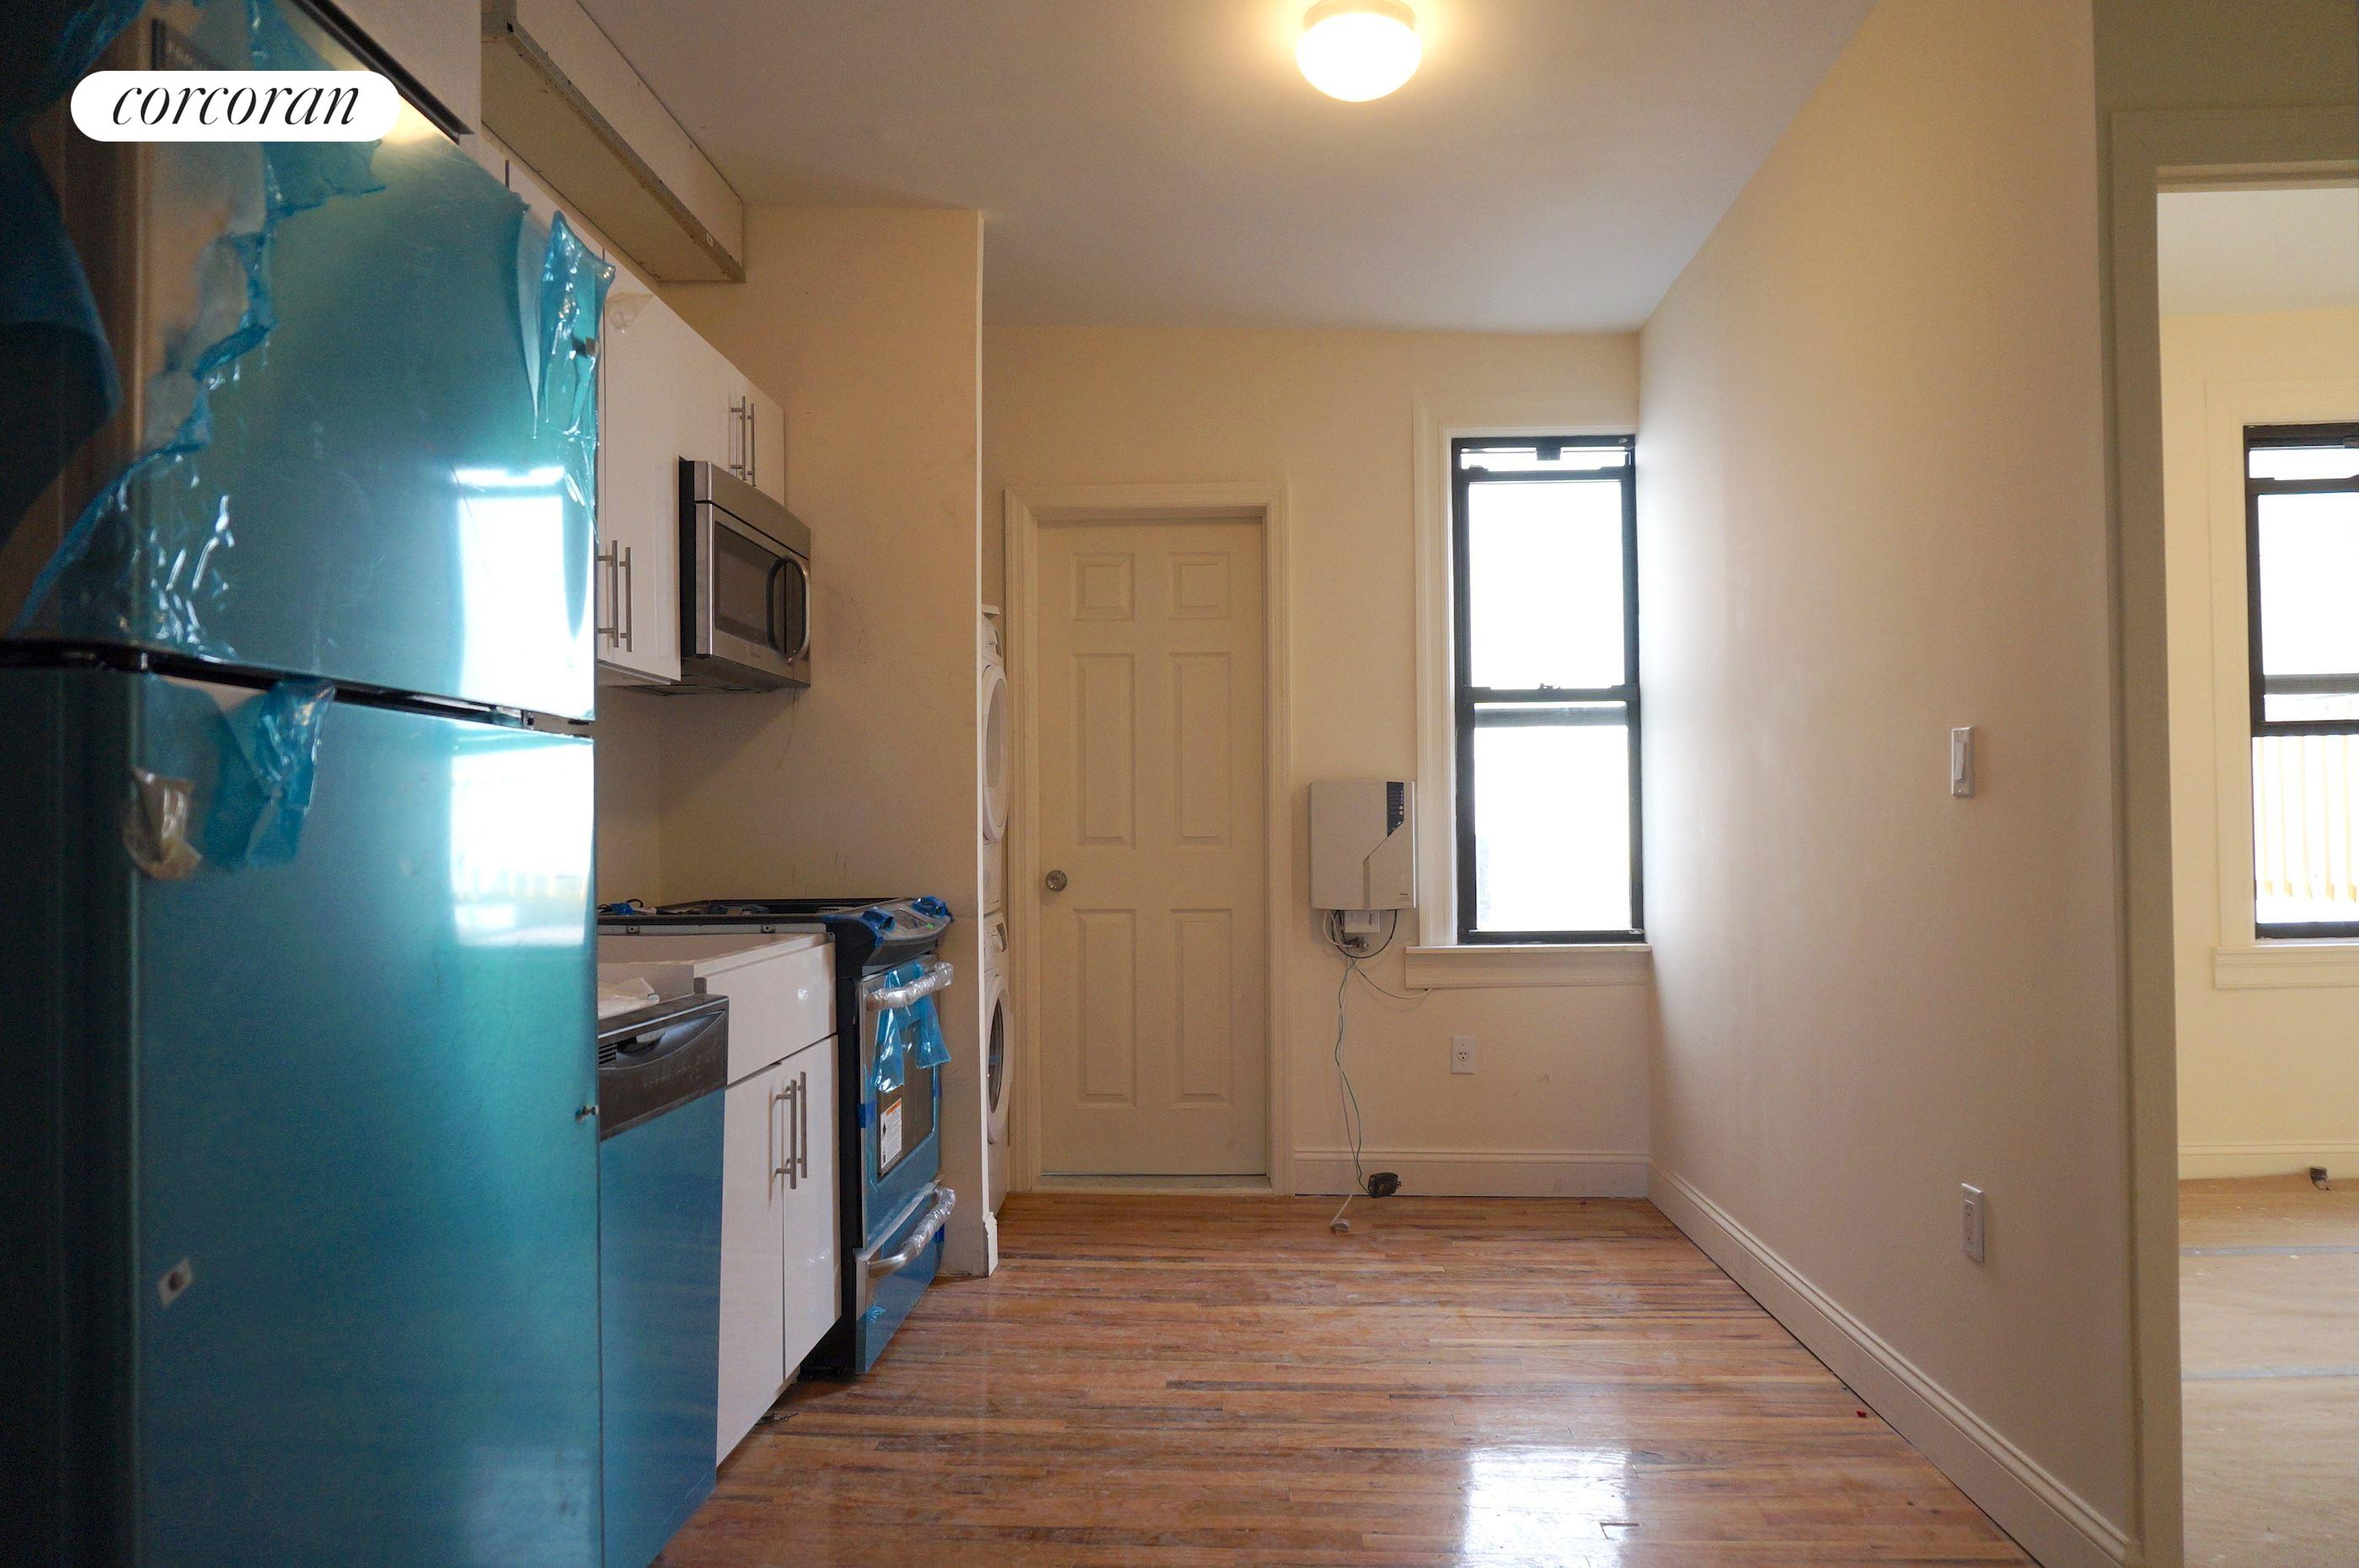 402 Graham Avenue, 2FLR, Eat in Kitchen